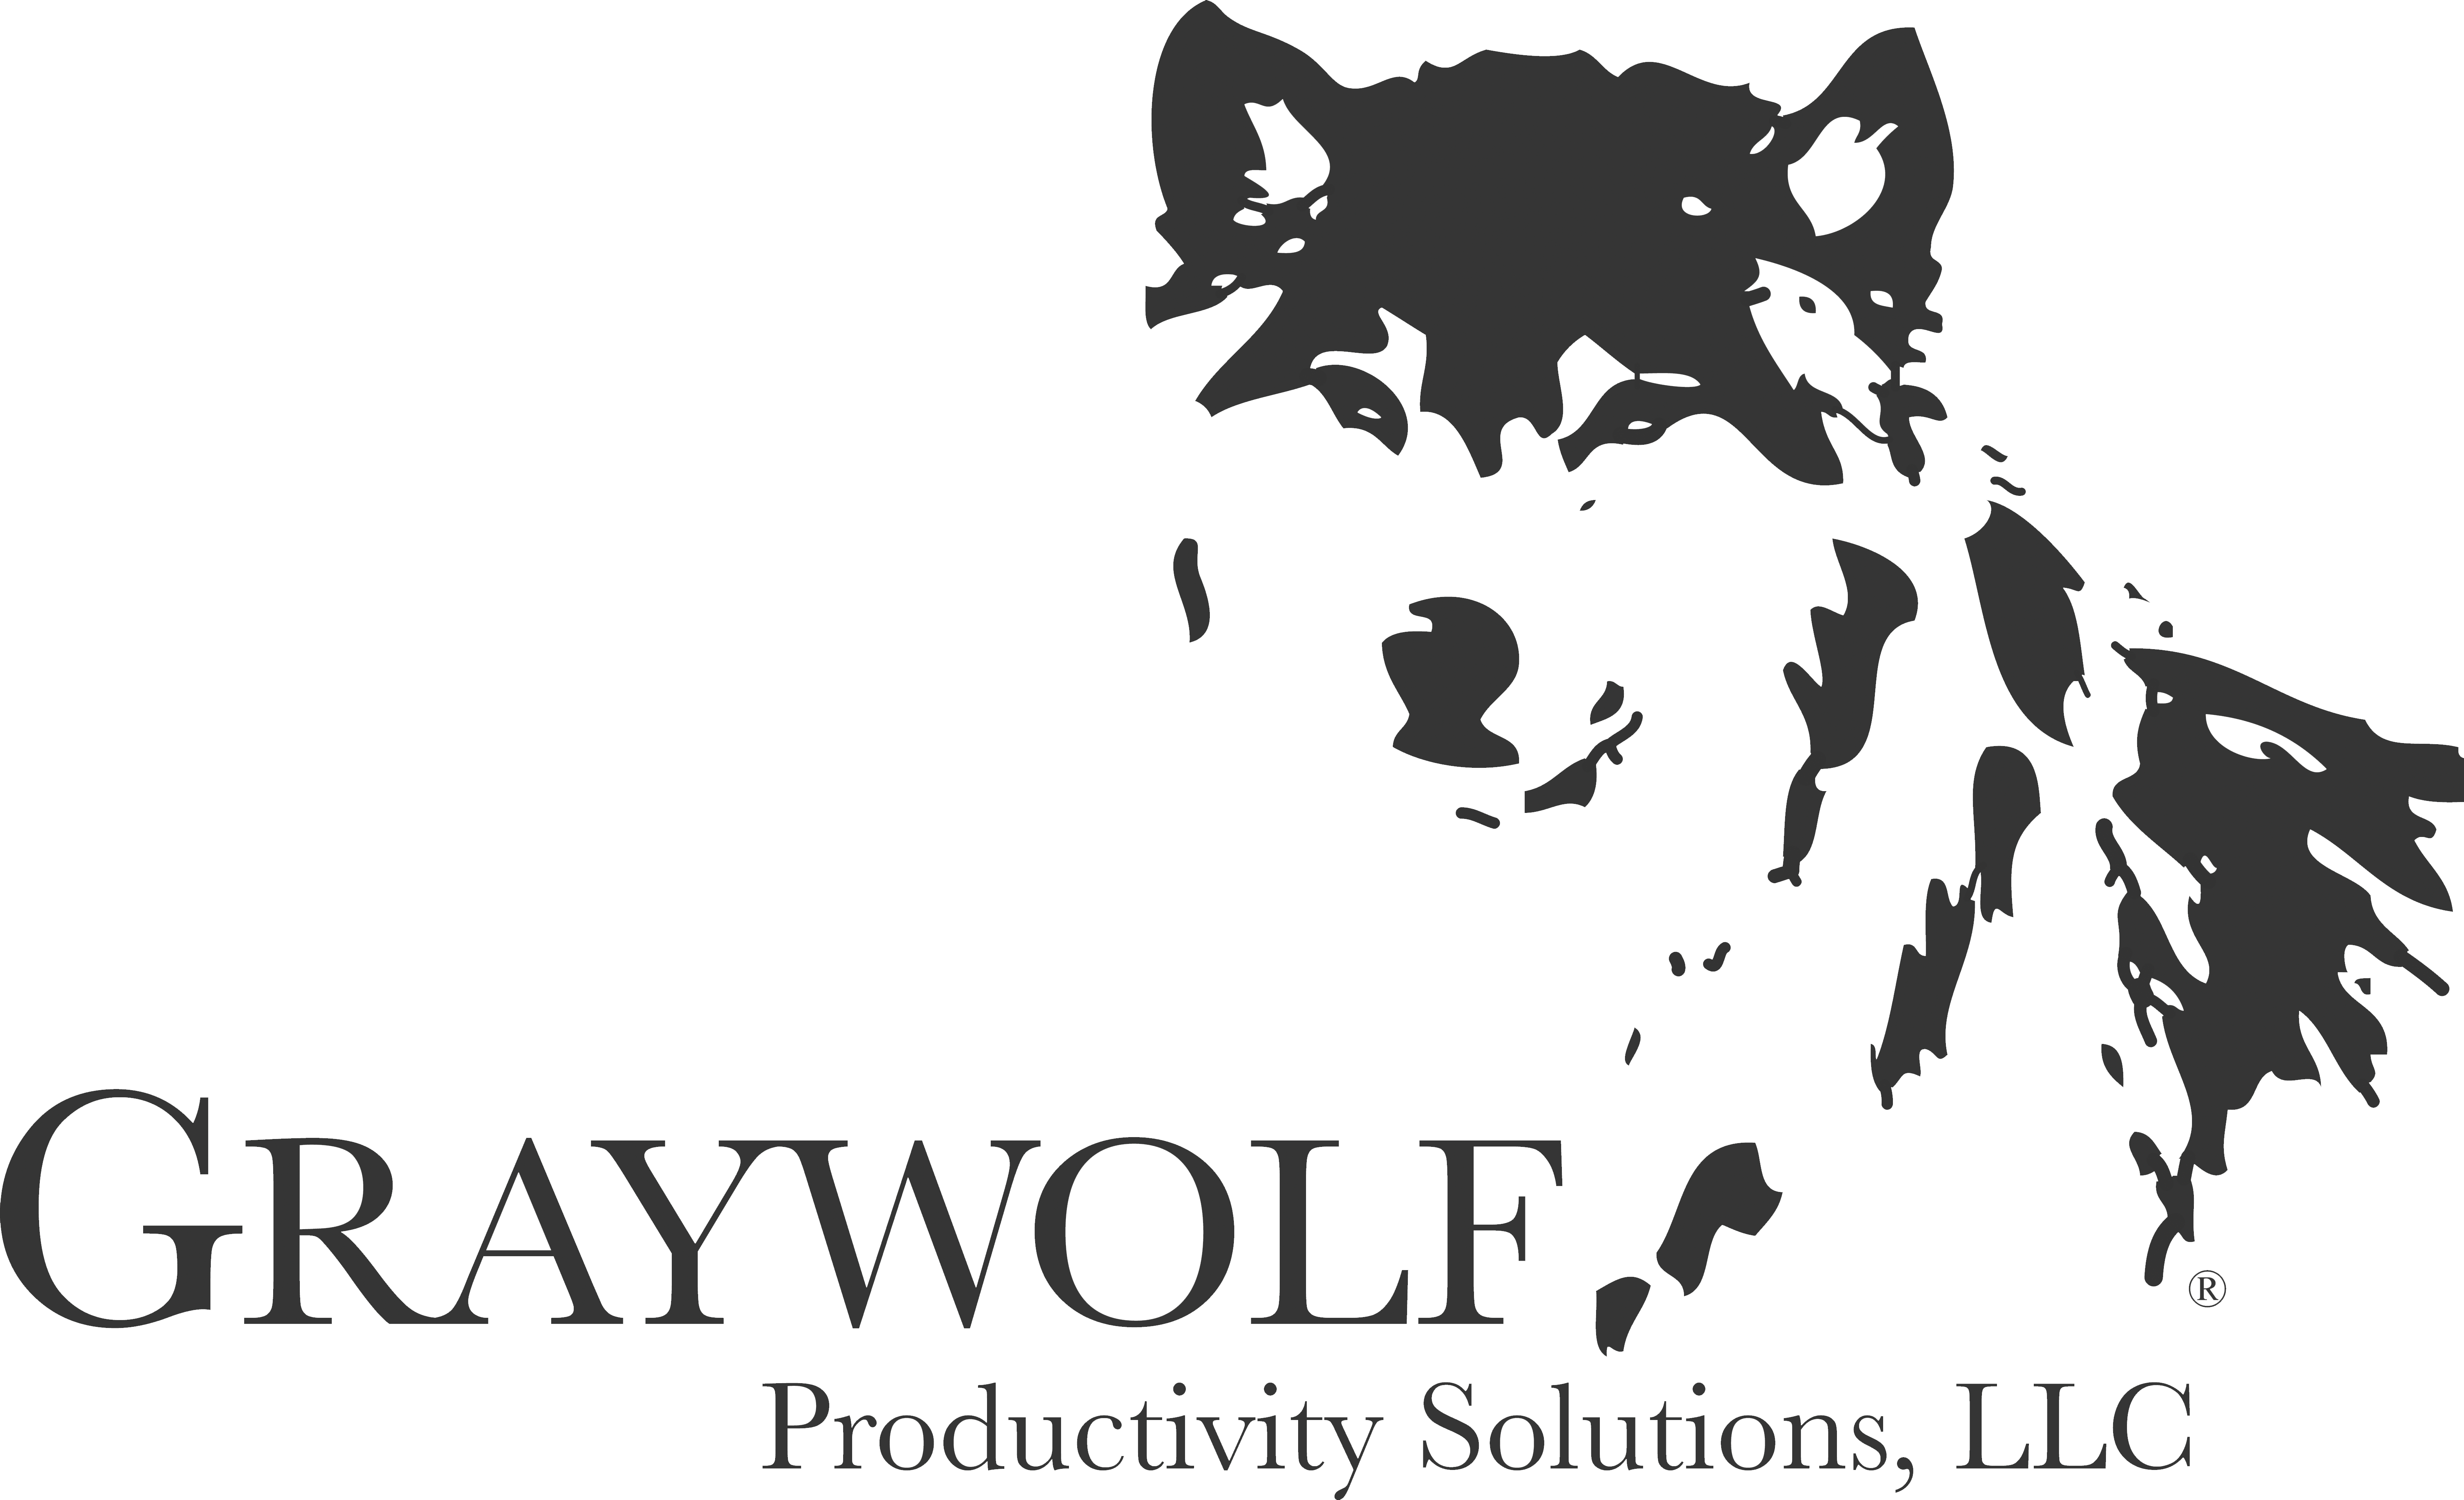 Graywolf Productivity Solutions, LLC